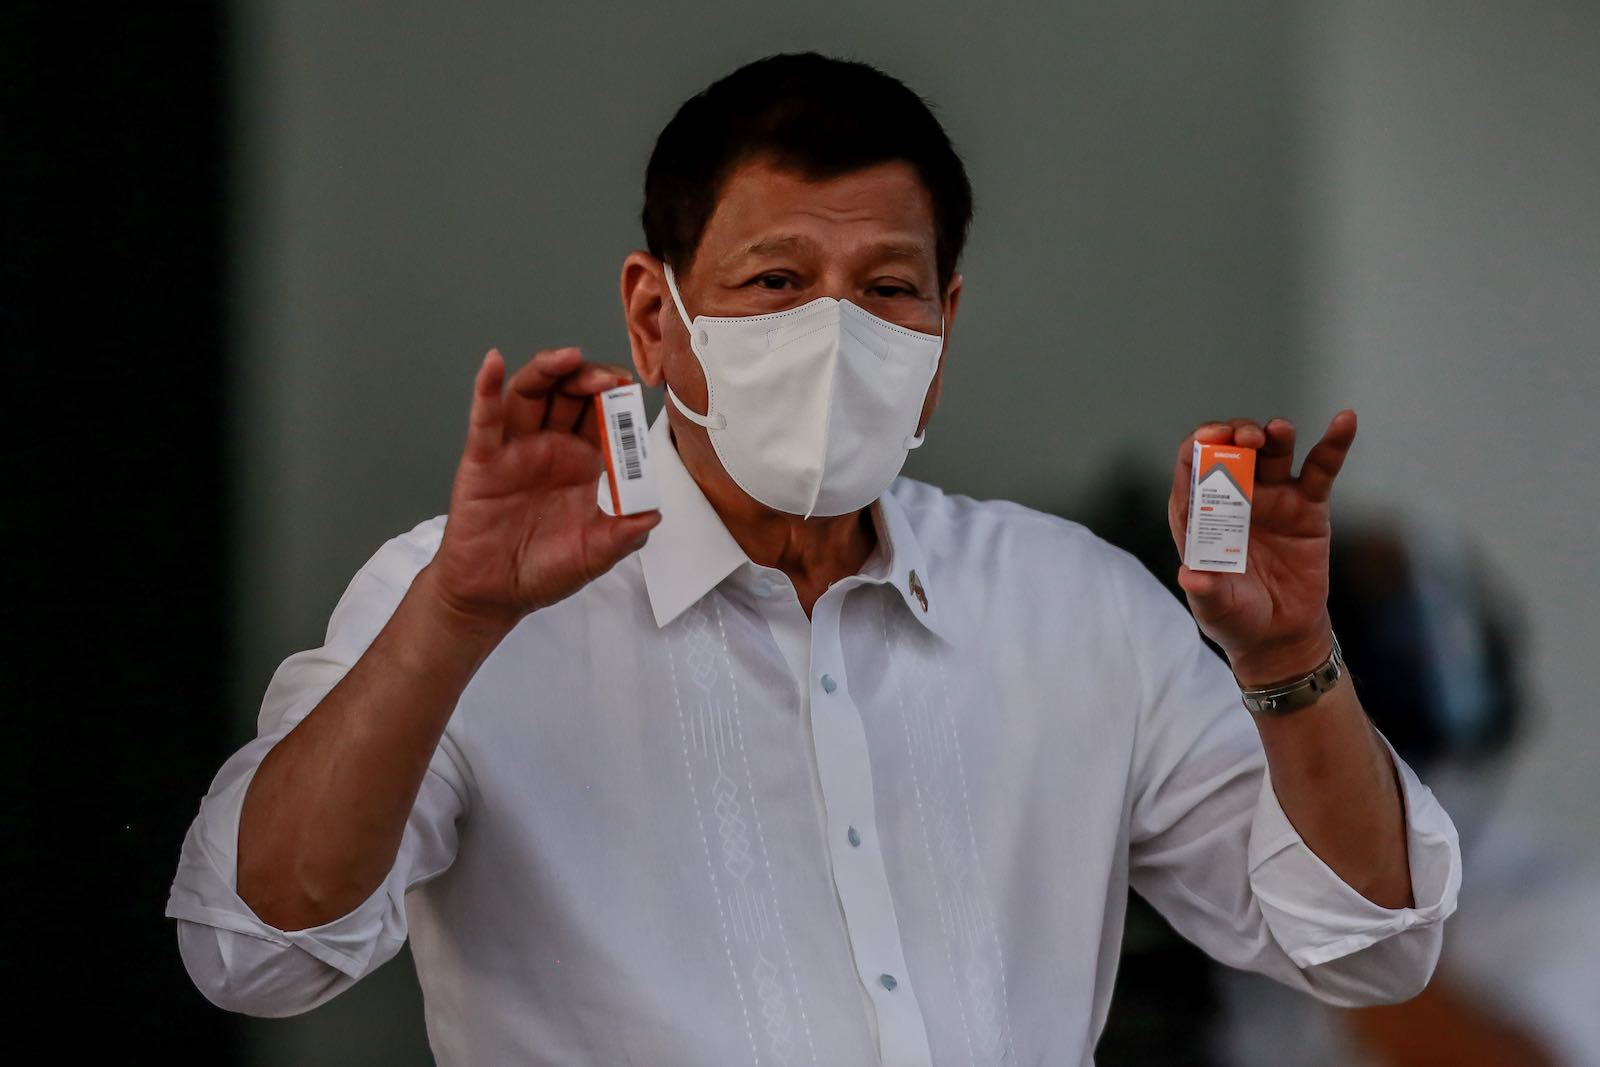 Philippine President Rodrigo Duterte shows boxes of newly arrived Sinovac Covid-19 vaccines purchased from China, 29 March 2021 in Manila (Xinhua/Rouelle Umali via Getty Images)